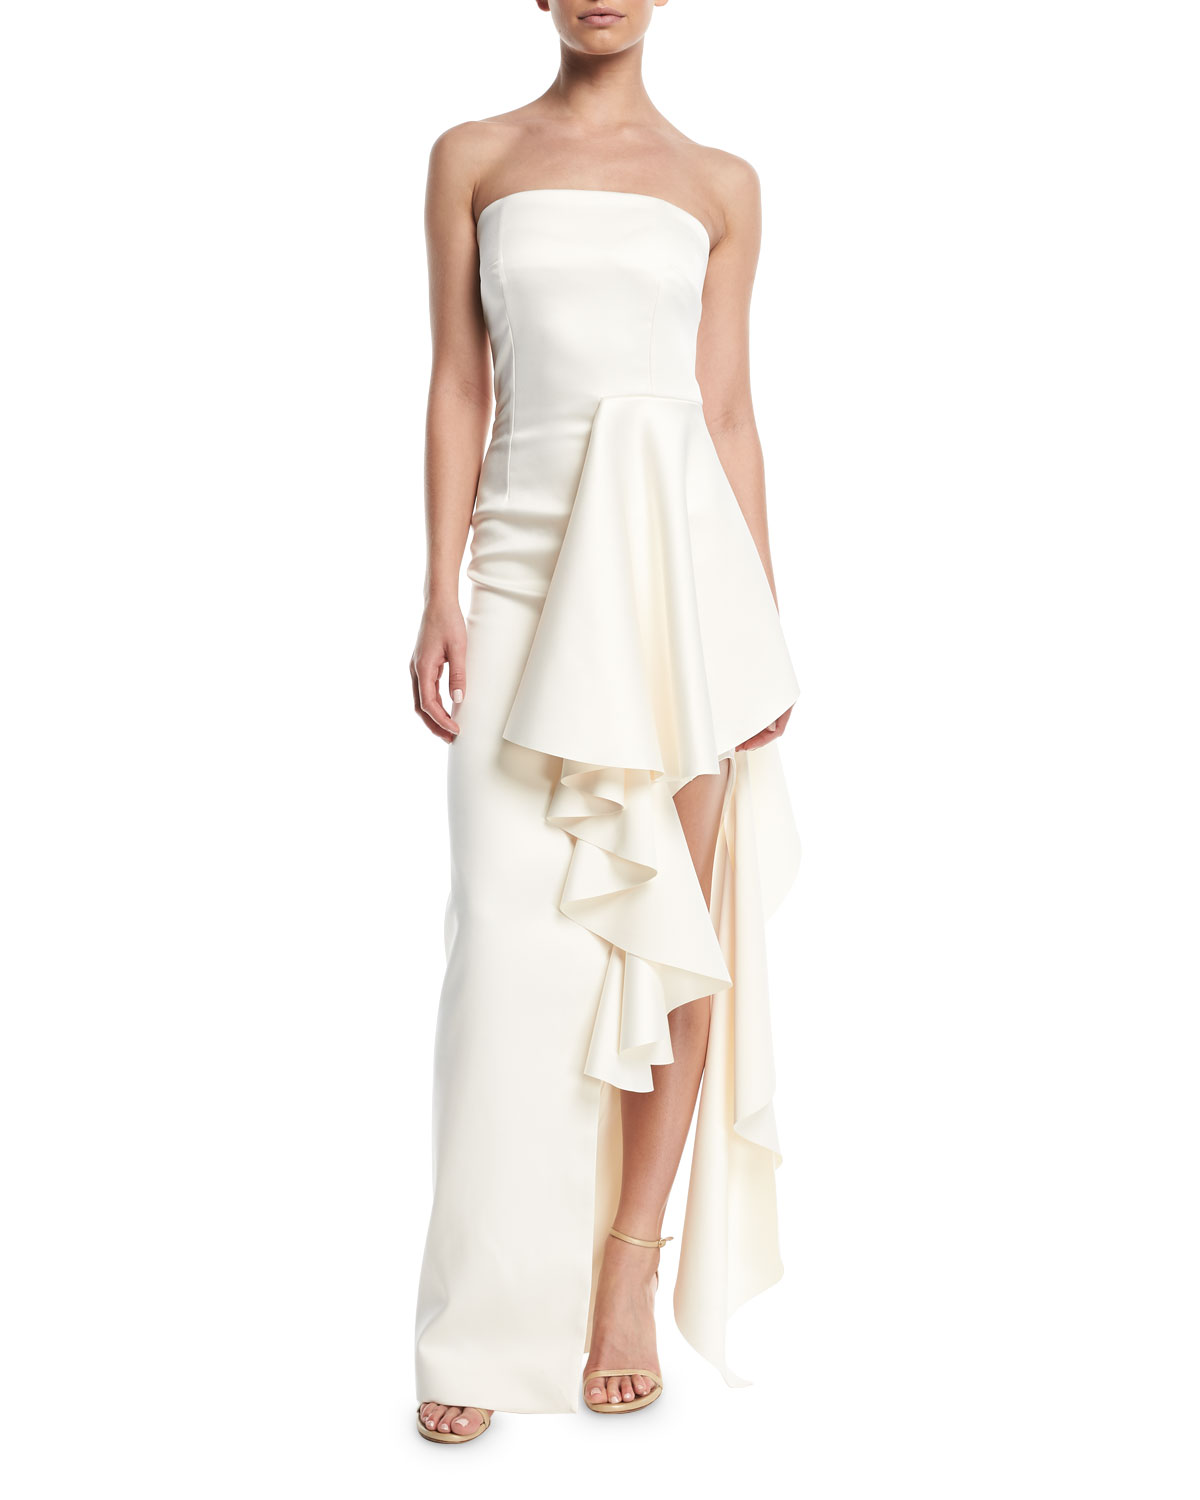 Solace London Aryana Strapless Maxi Dress w/ Dramatic ...